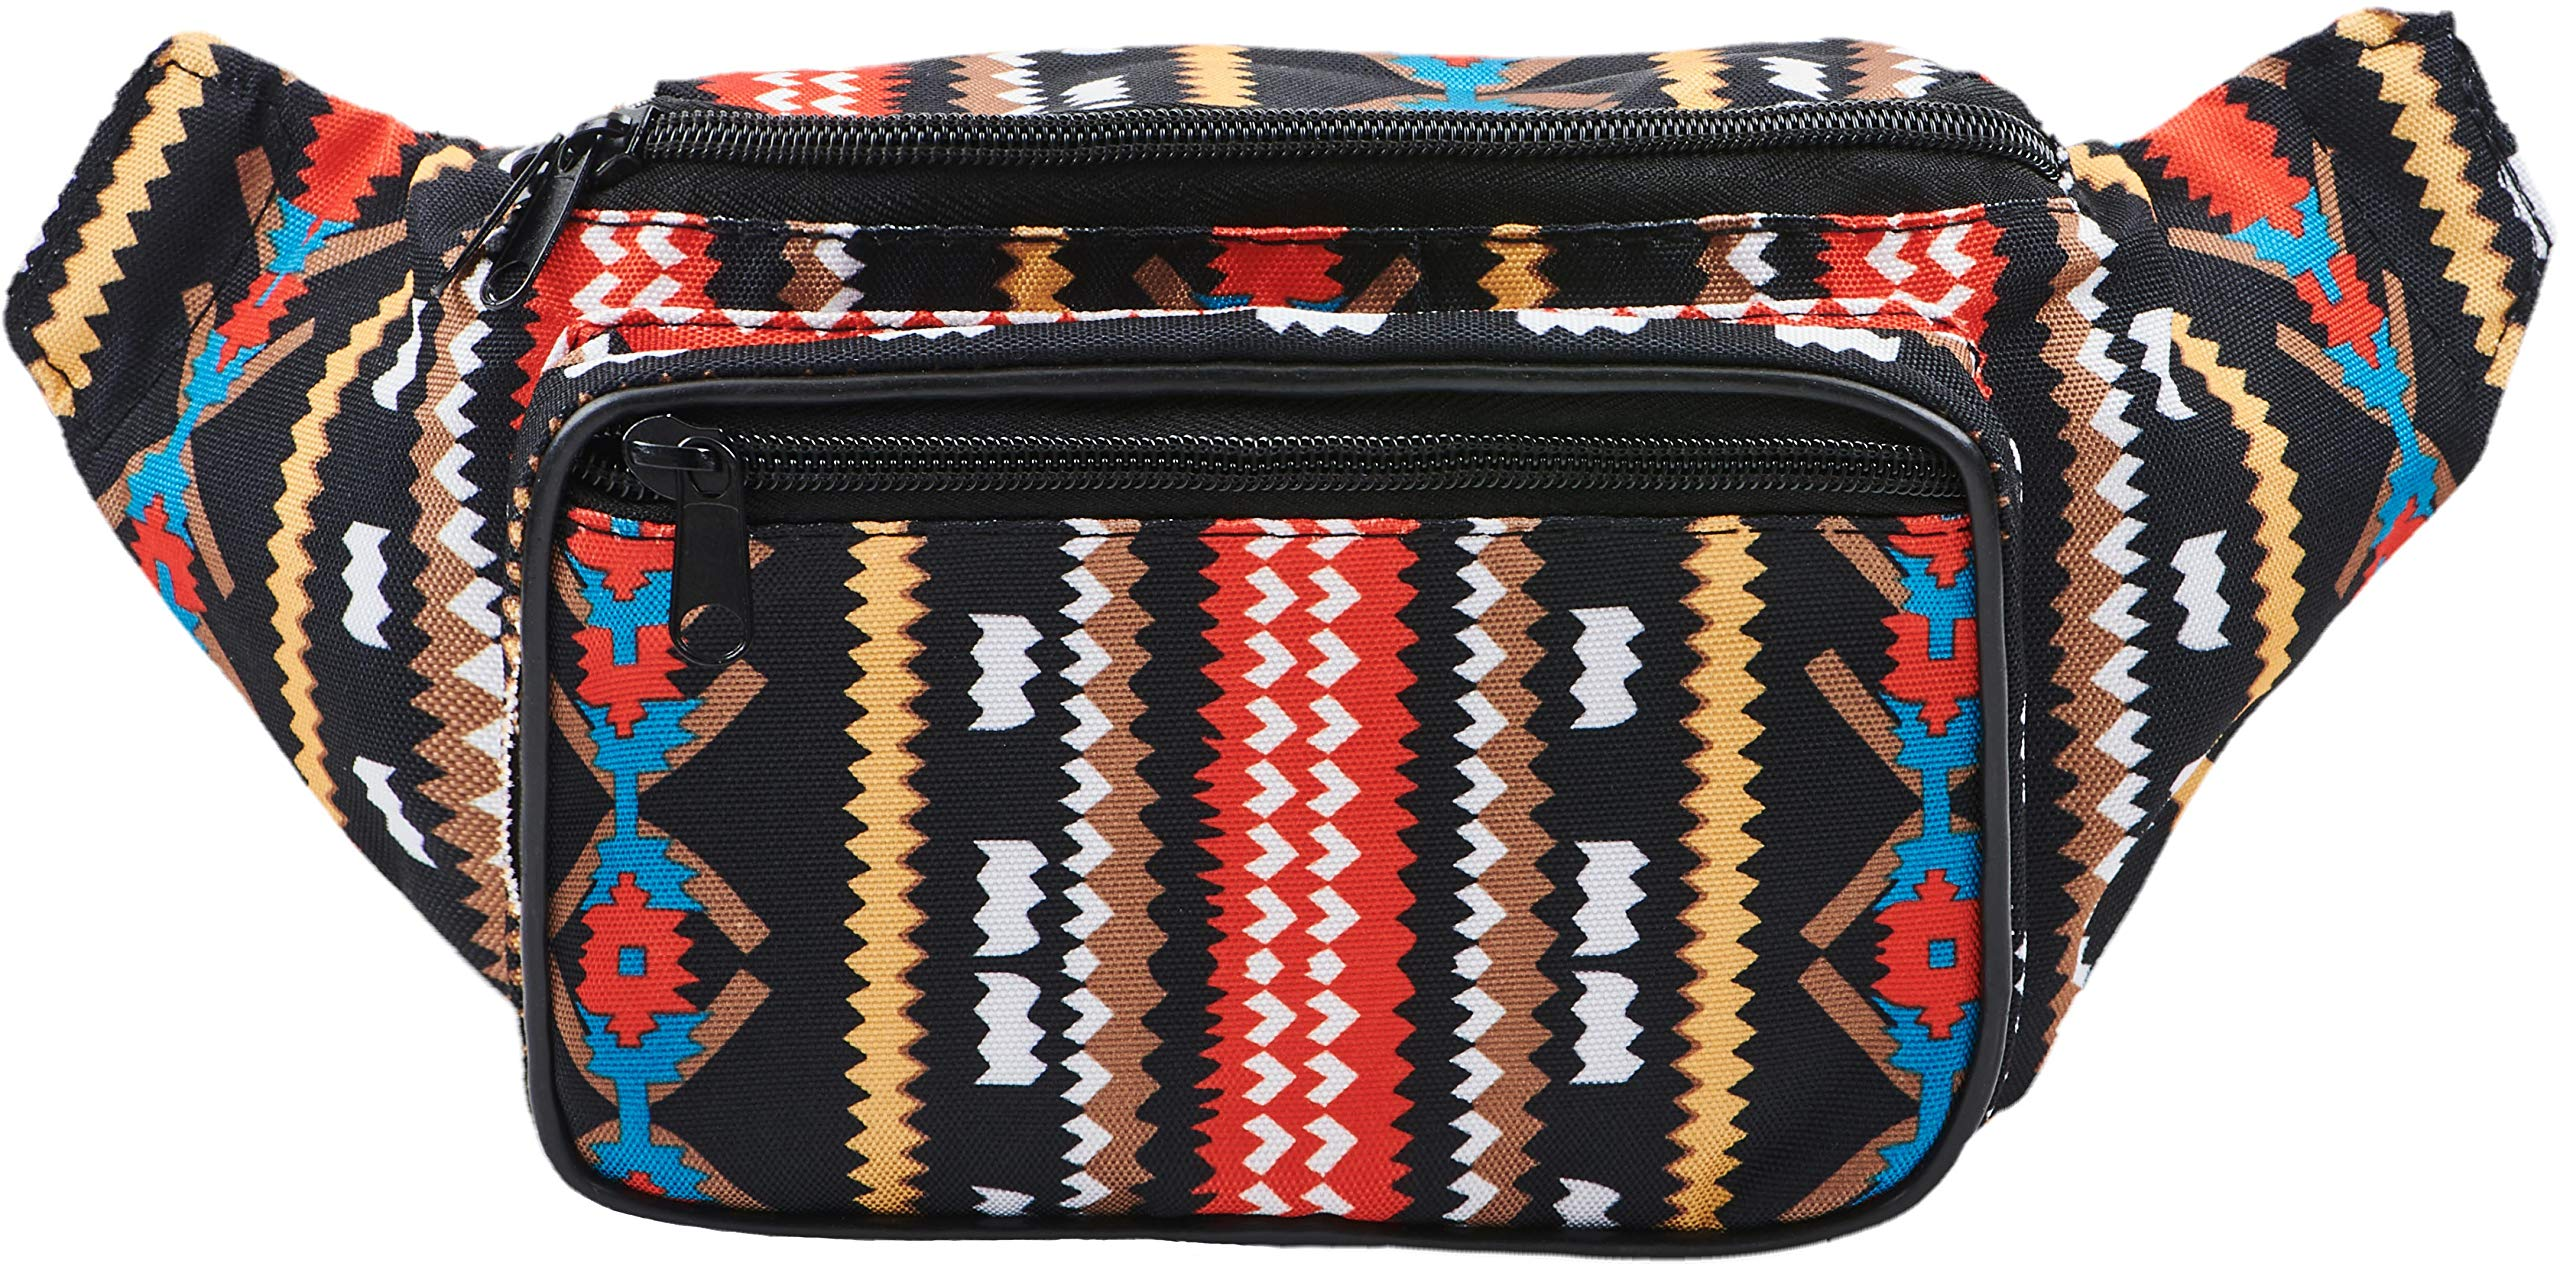 SoJourner Festival Fanny Pack - Aztec, Tribal Style (Black/Red)